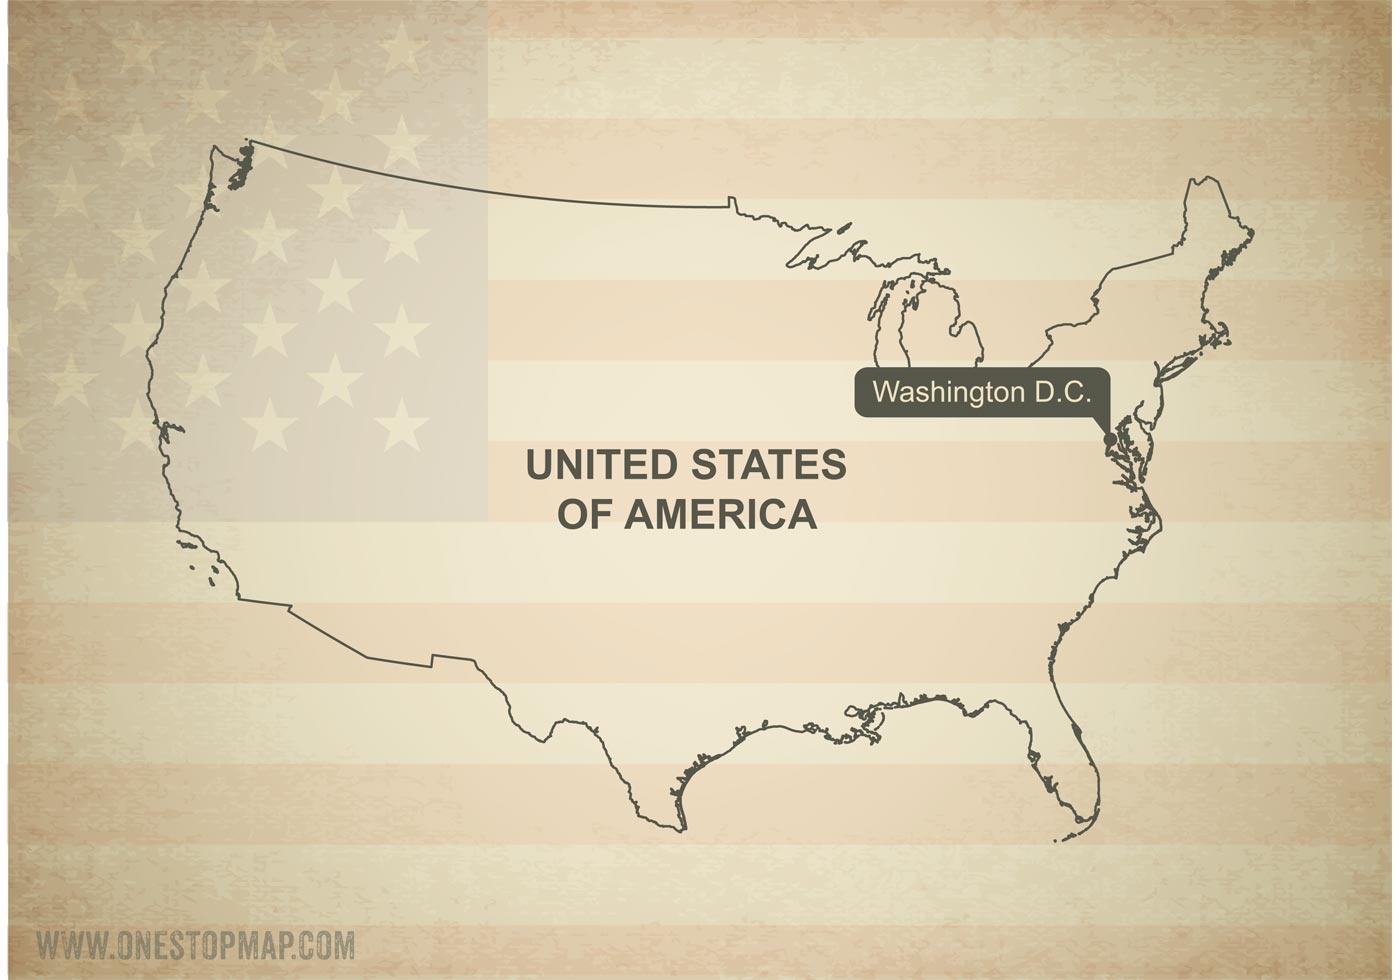 Free Vector Map Of United States Free Vector Art At Vecteezy - Us map free vector